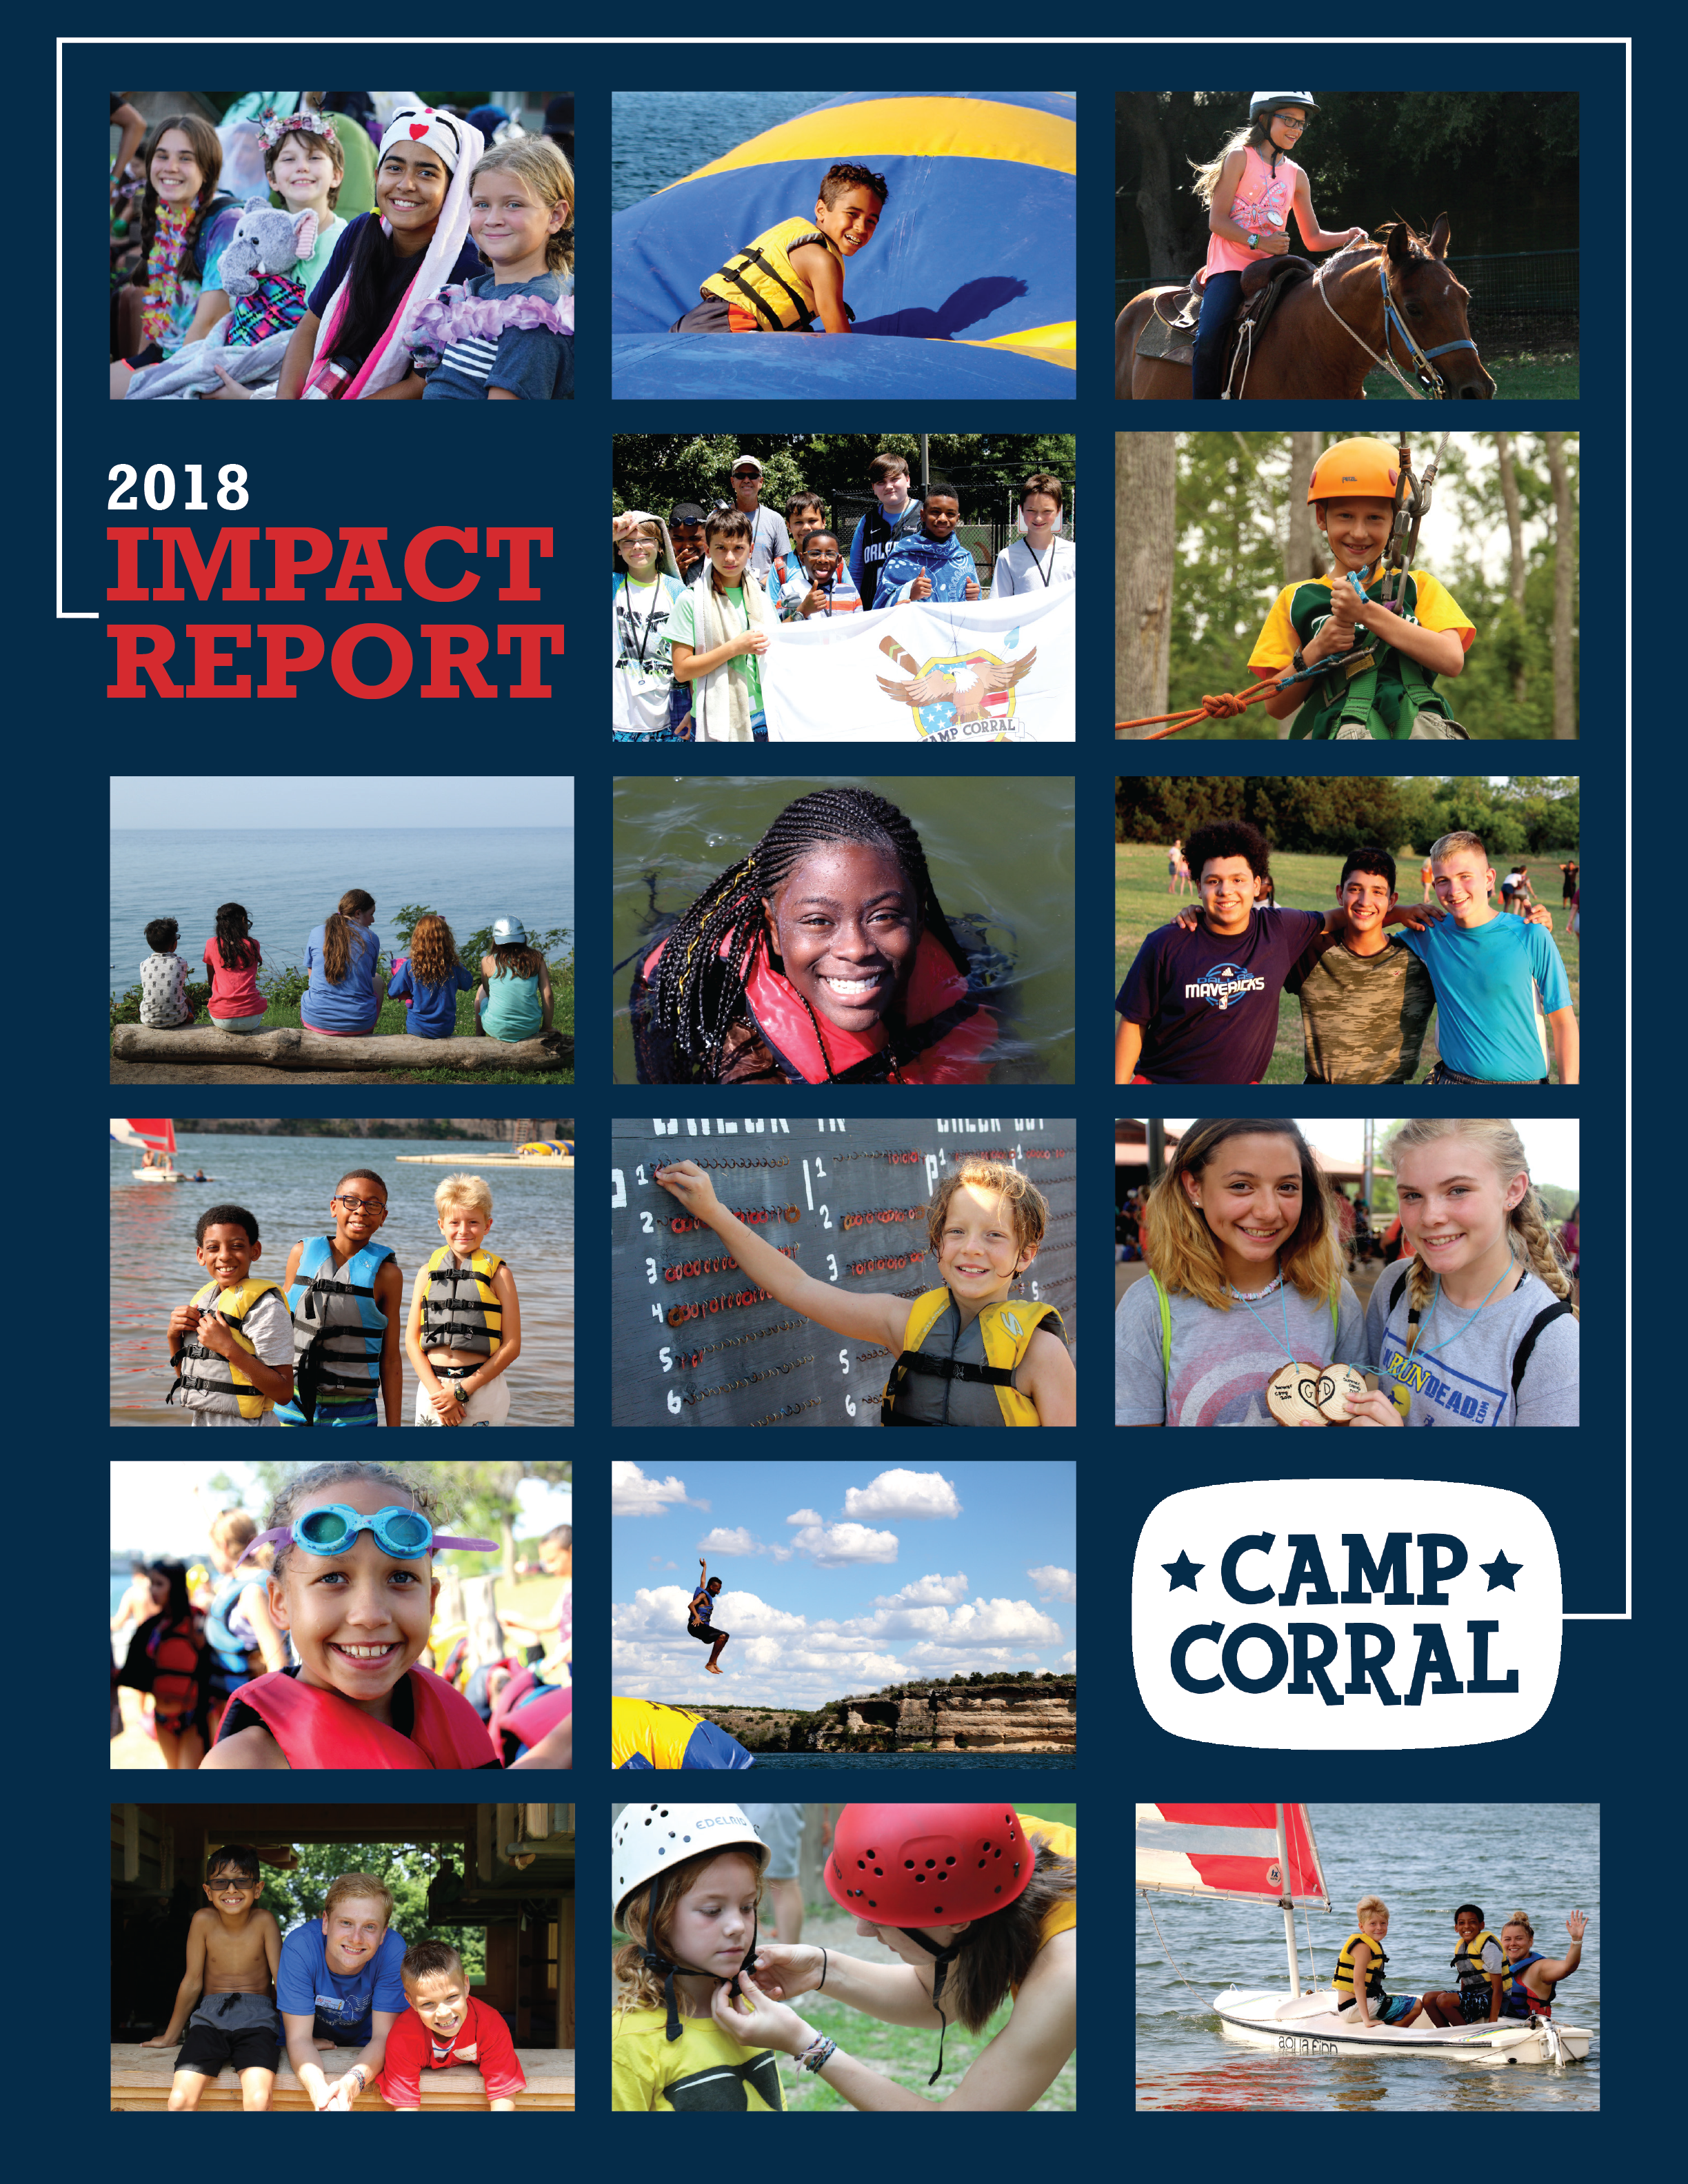 Camp Corral Annual Report